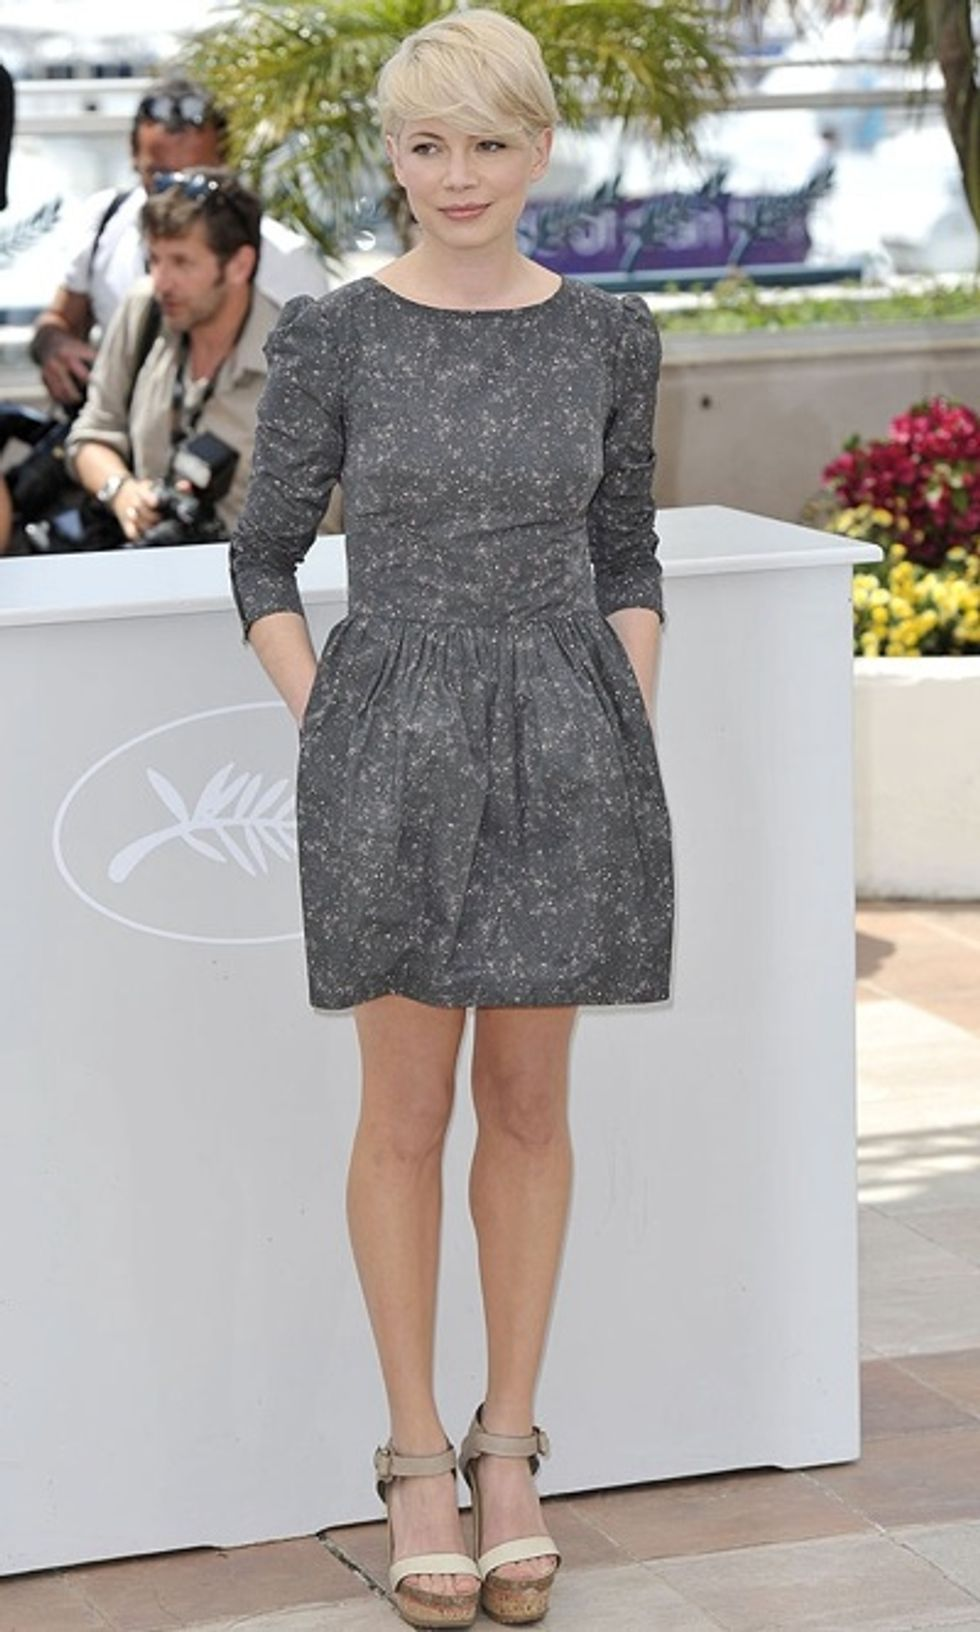 Michelle Williams Sports SUNO At Cannes. We Chat With Designer Max Osterweis About the Jaunty Frock.